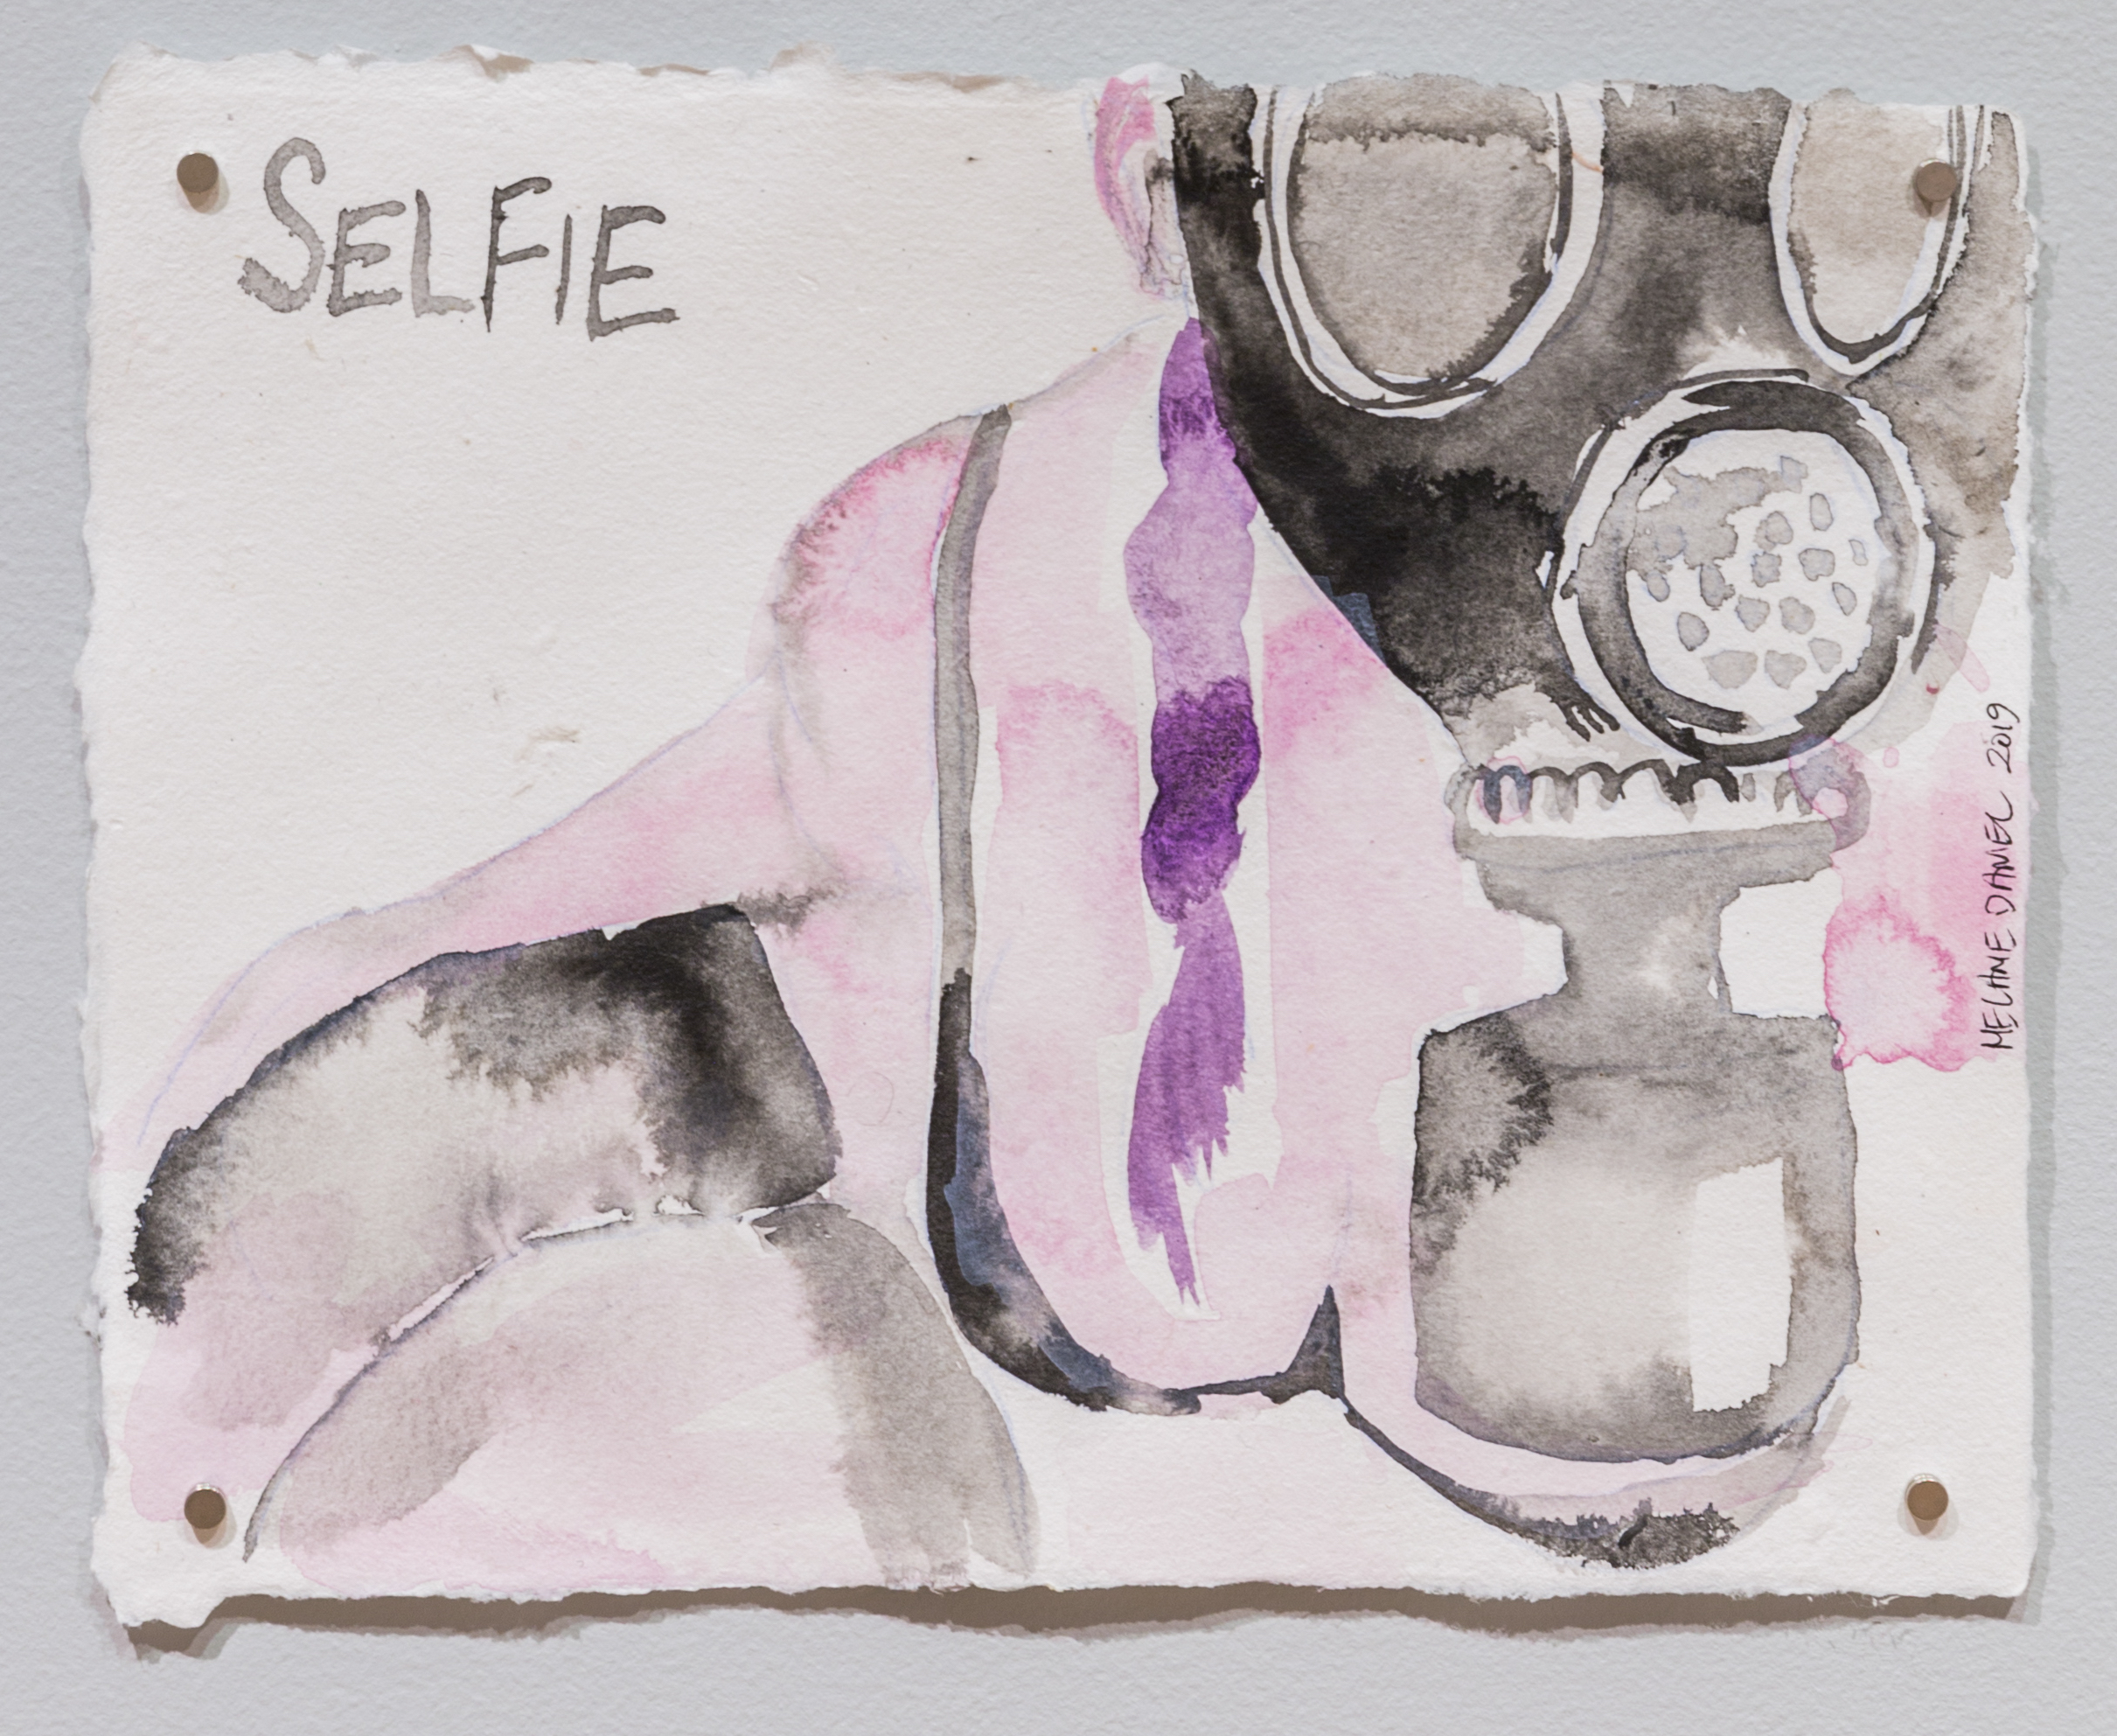 Selfie, 2019, watercolour on handmade paper, 11 X 15 inches.